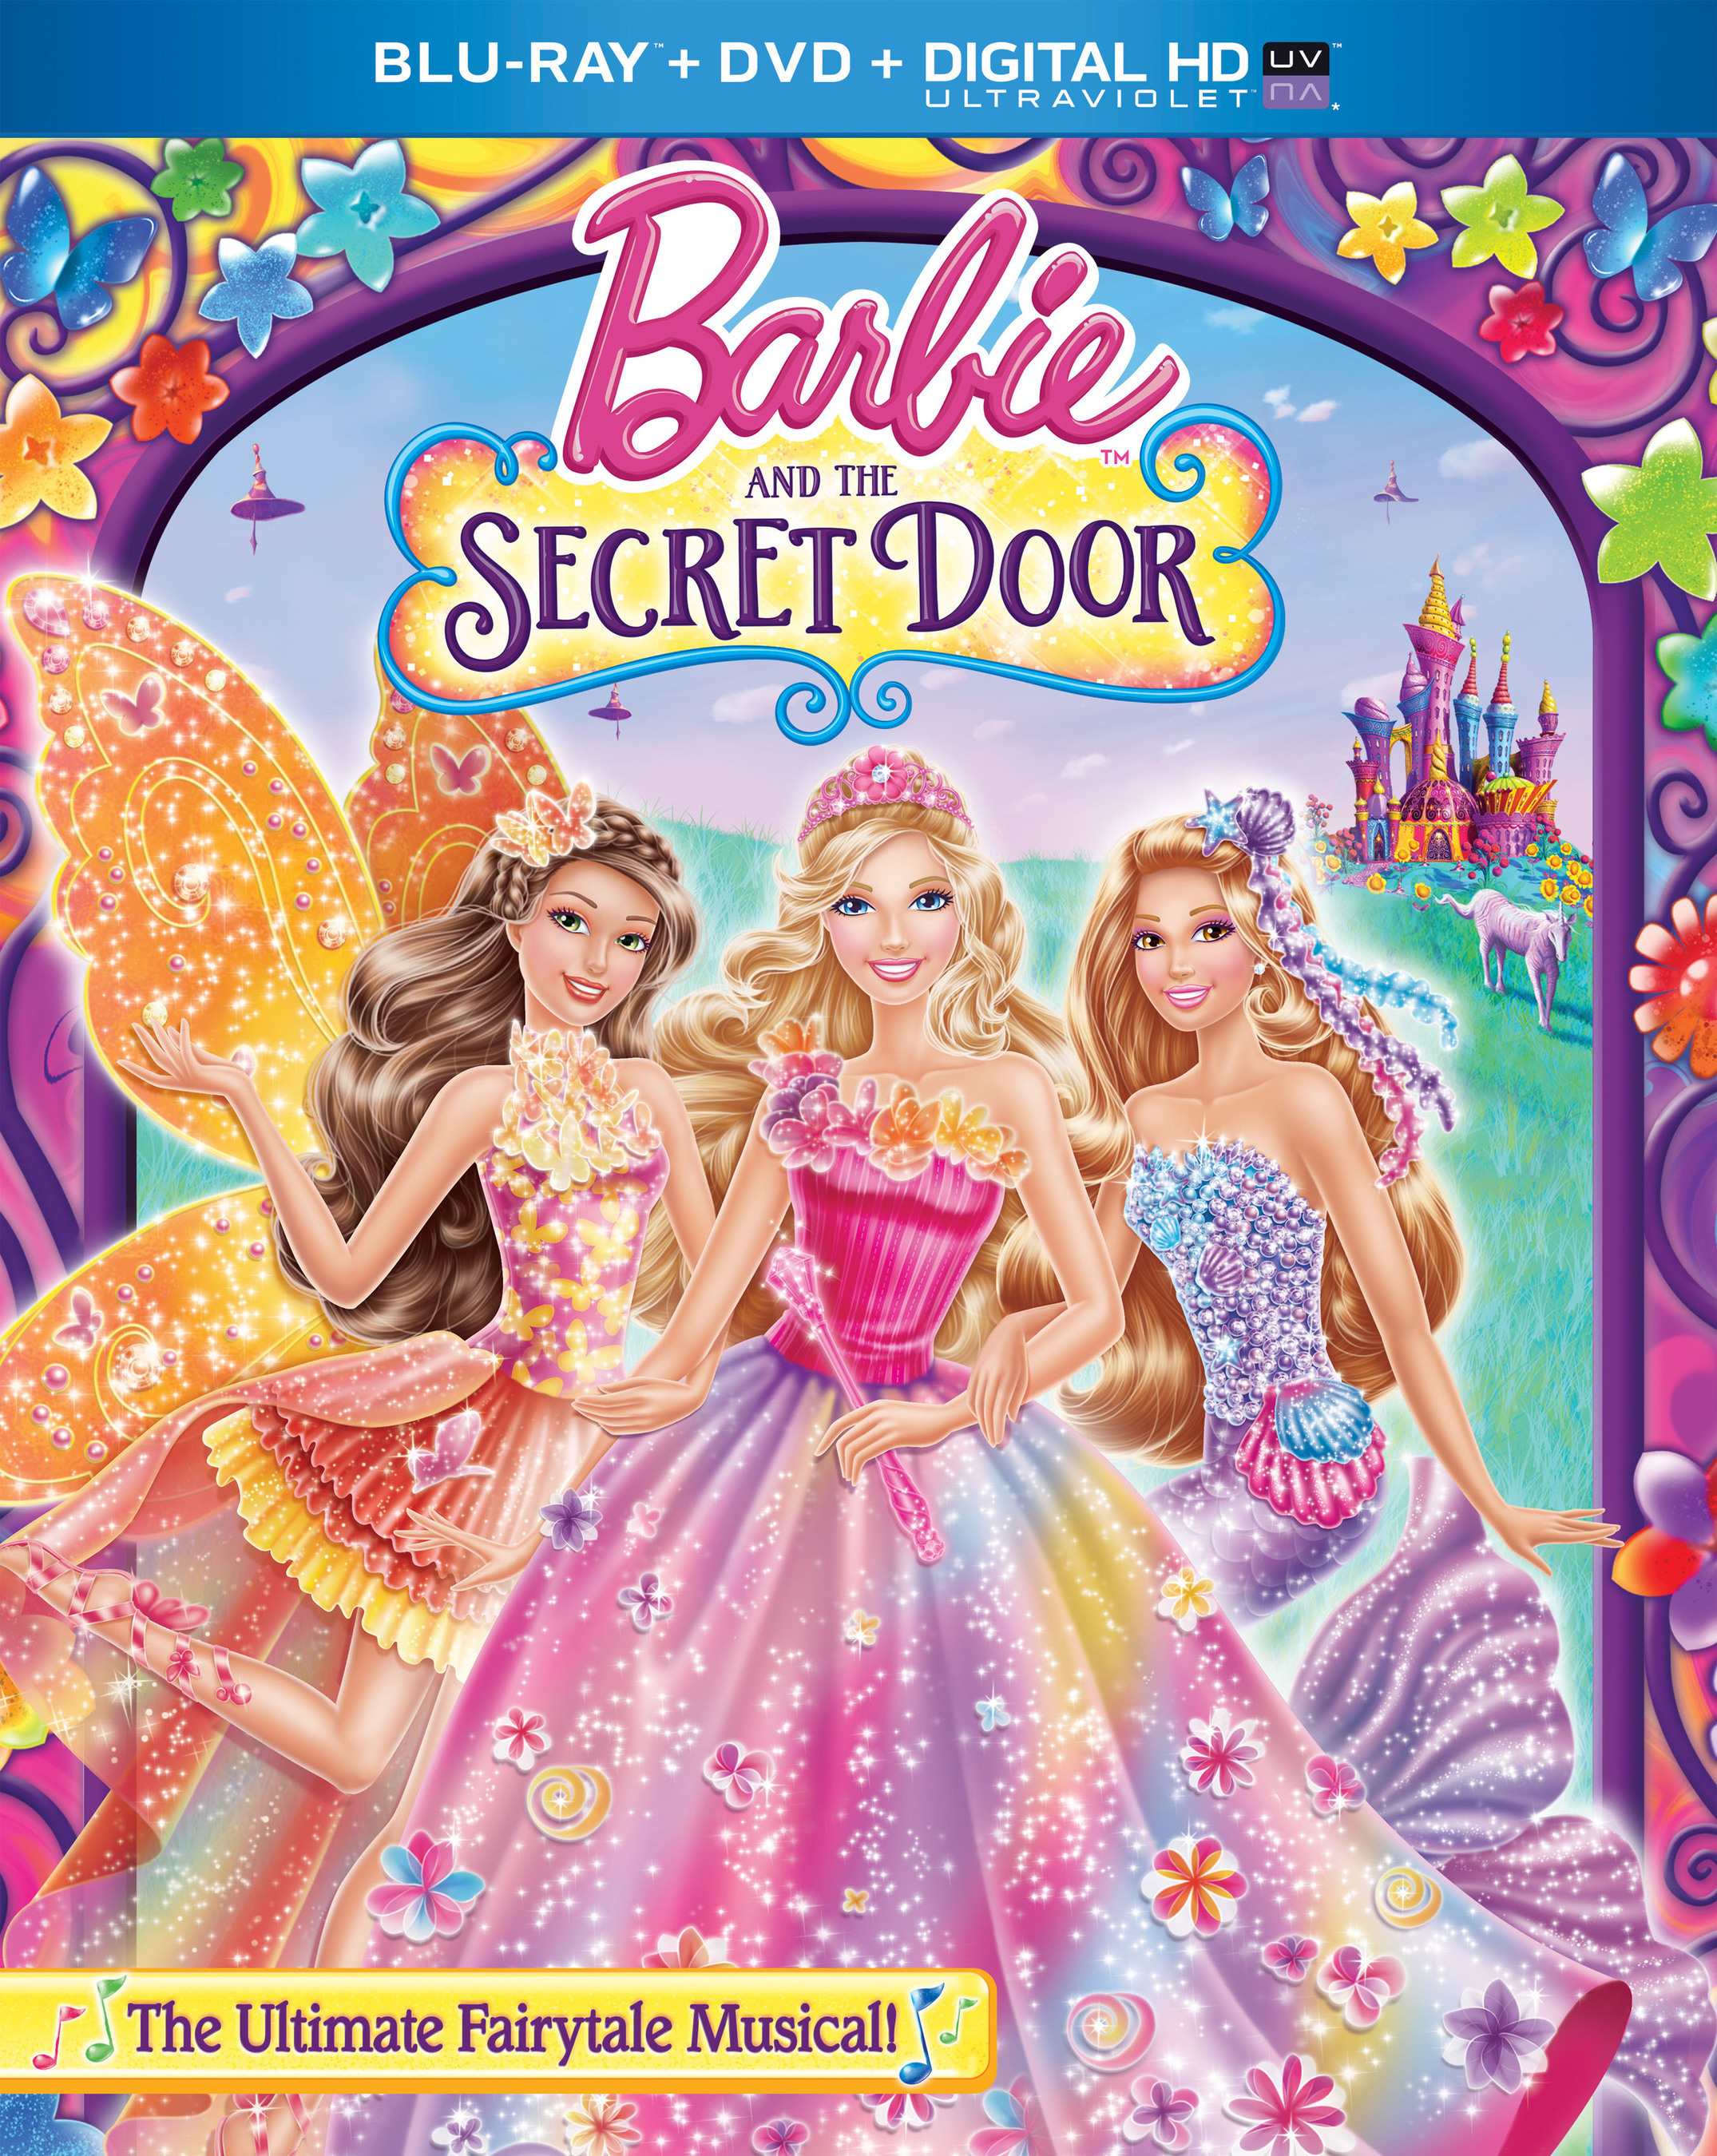 BARBIE AND THE SECRET DOOR Coming to Blu-ray/DVD & Digital HD, 9/16